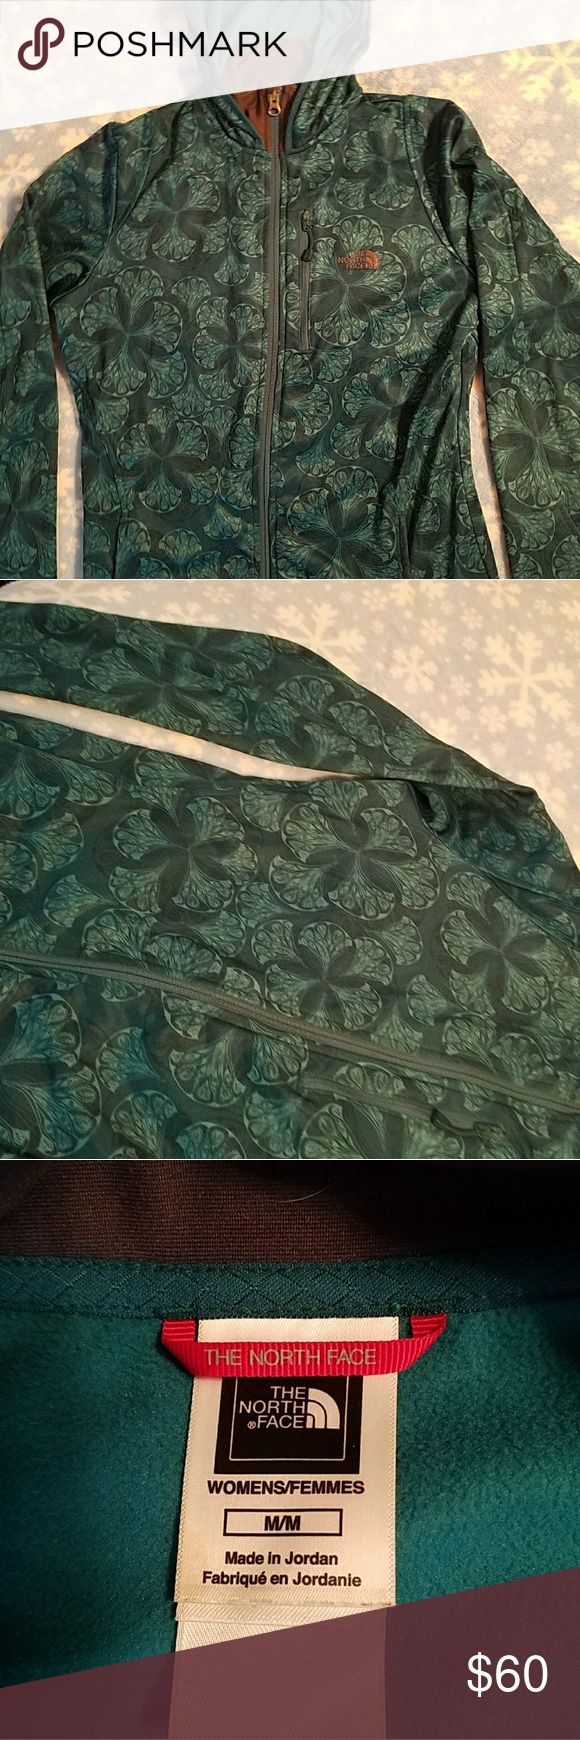 North Face Hoodie Beautiful teal patterned womens hoodie jacket. Collar trim is actually grey, not brown. Excellent condition! The North Face Tops Sweatshirts & Hoodies